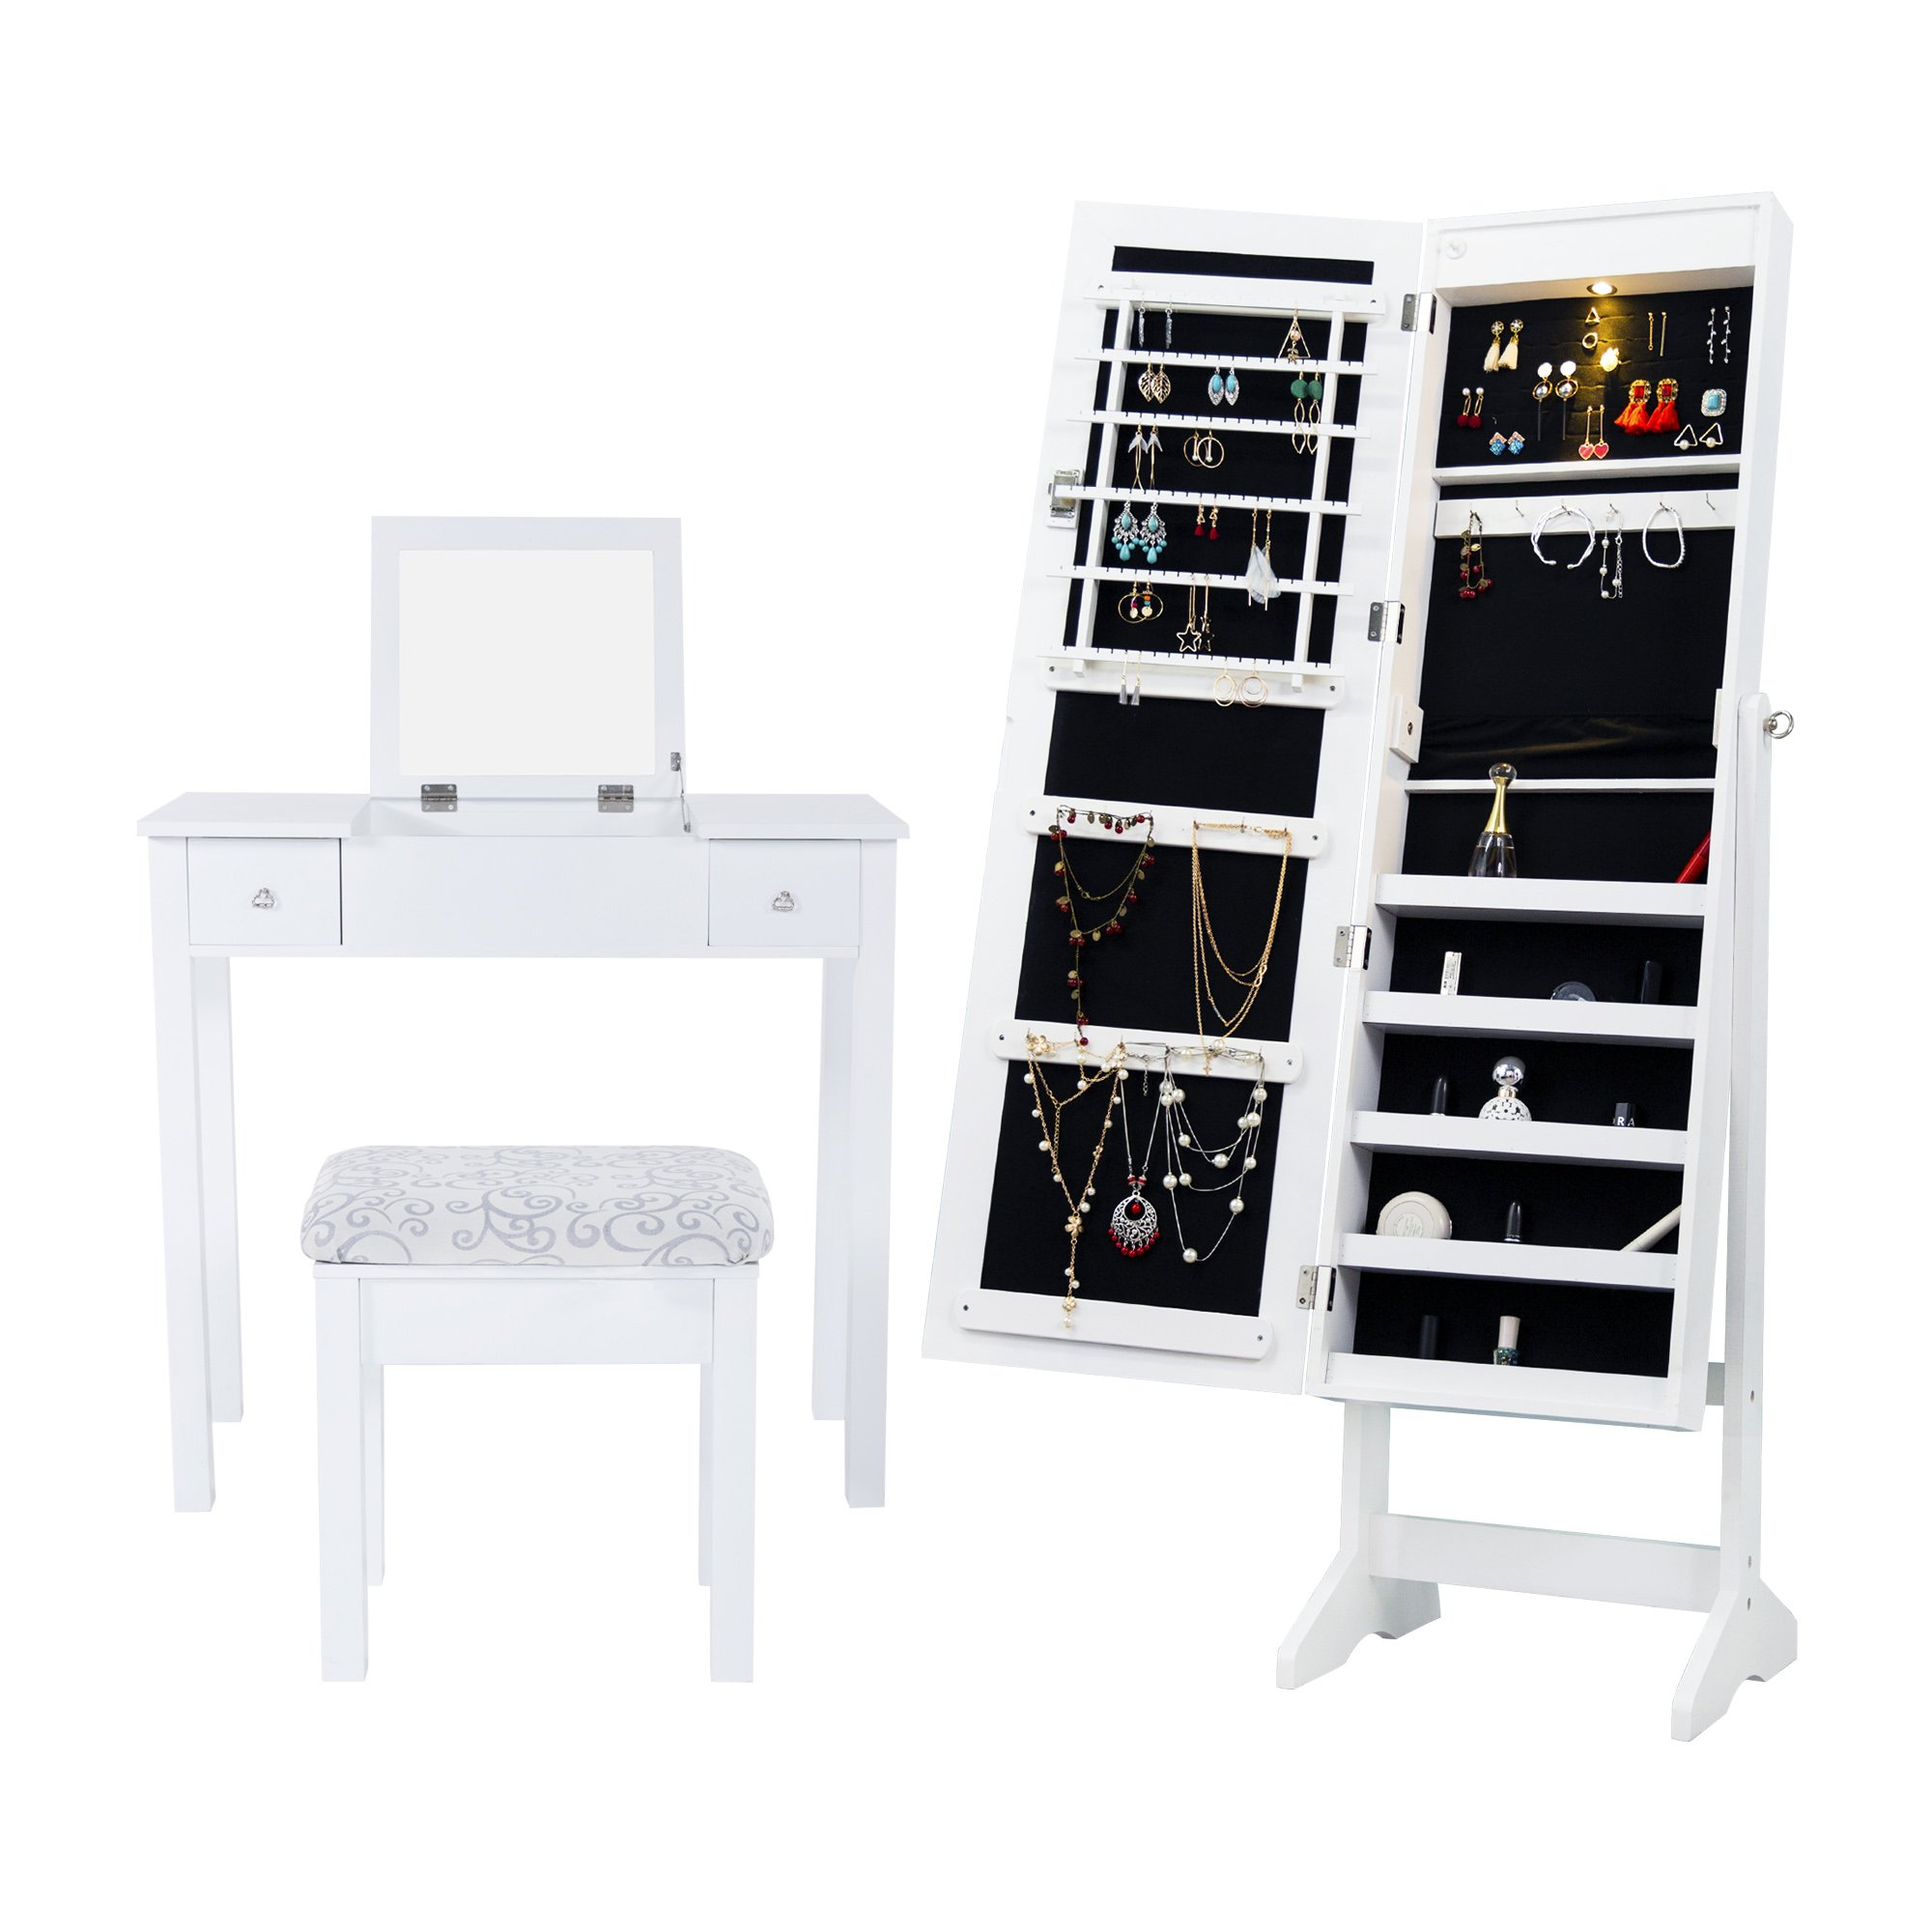 Cloud Mountain Mirrored Jewelry Armoire Jewelry Cabinet Free Standing with LED Light + Makeup Dressing Vanity Table Stool Set, White